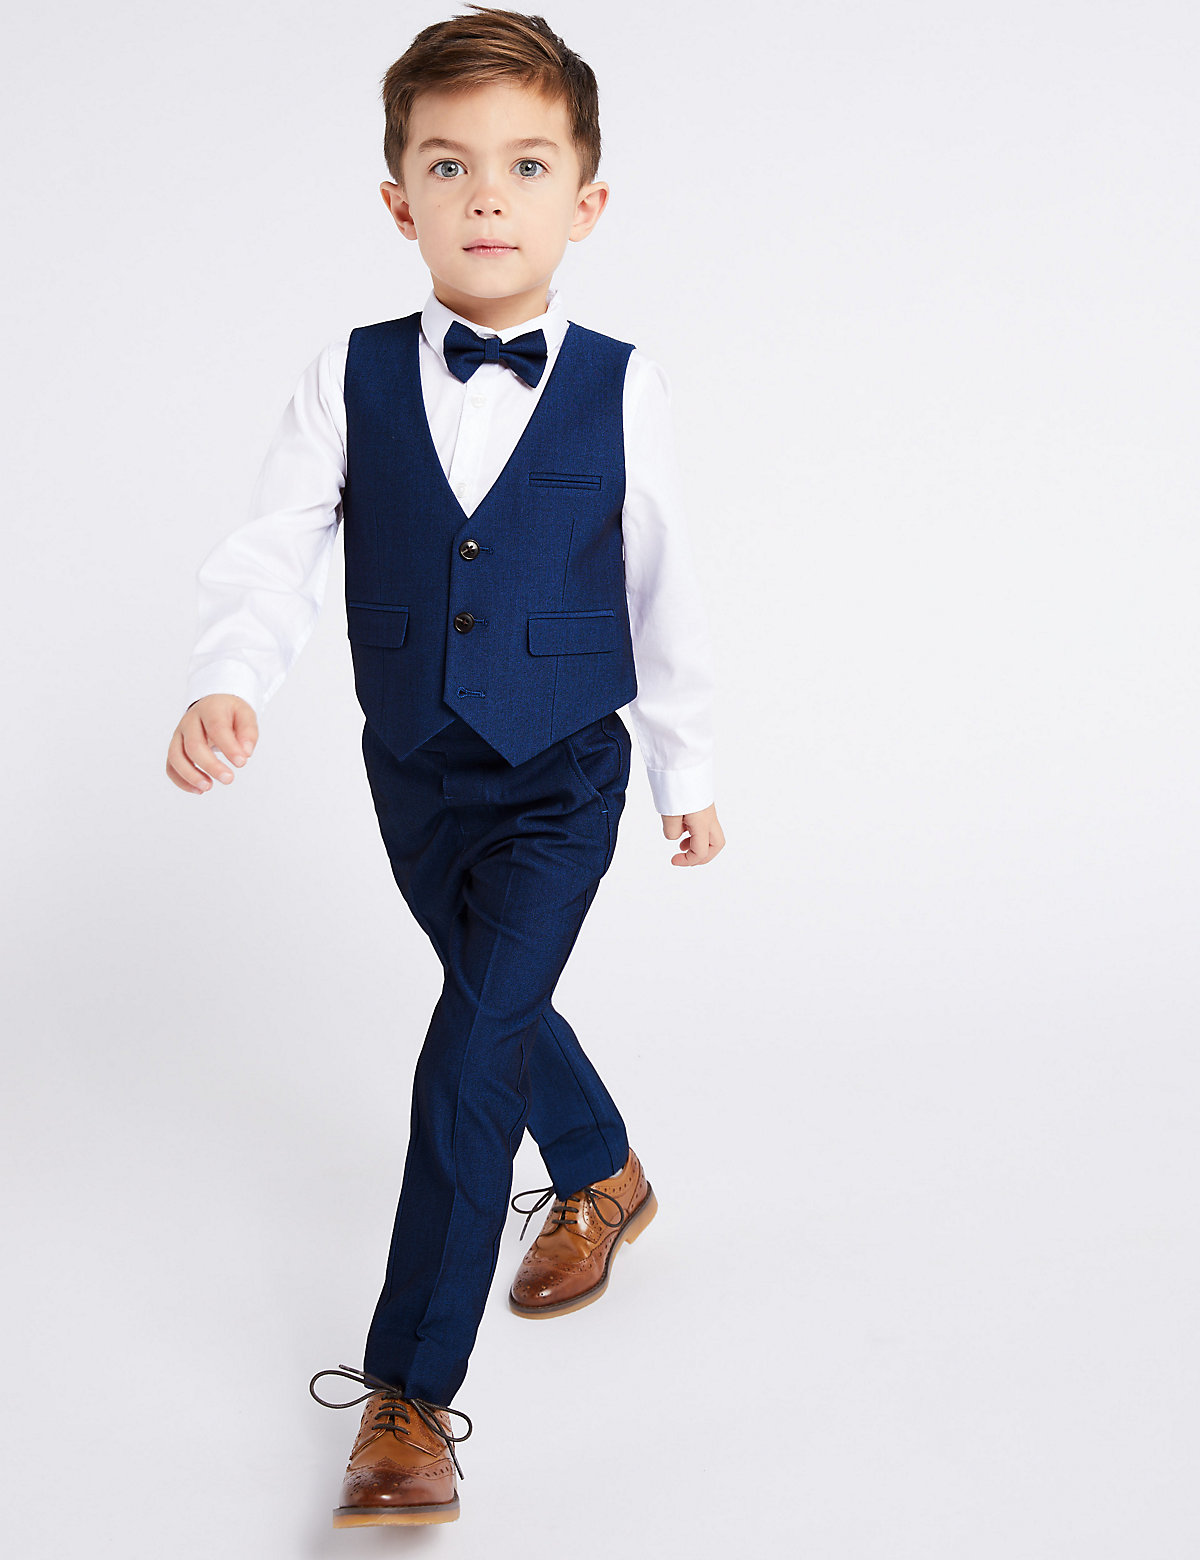 4 Piece Suit Outfit (3 Mths - 7 Yrs)